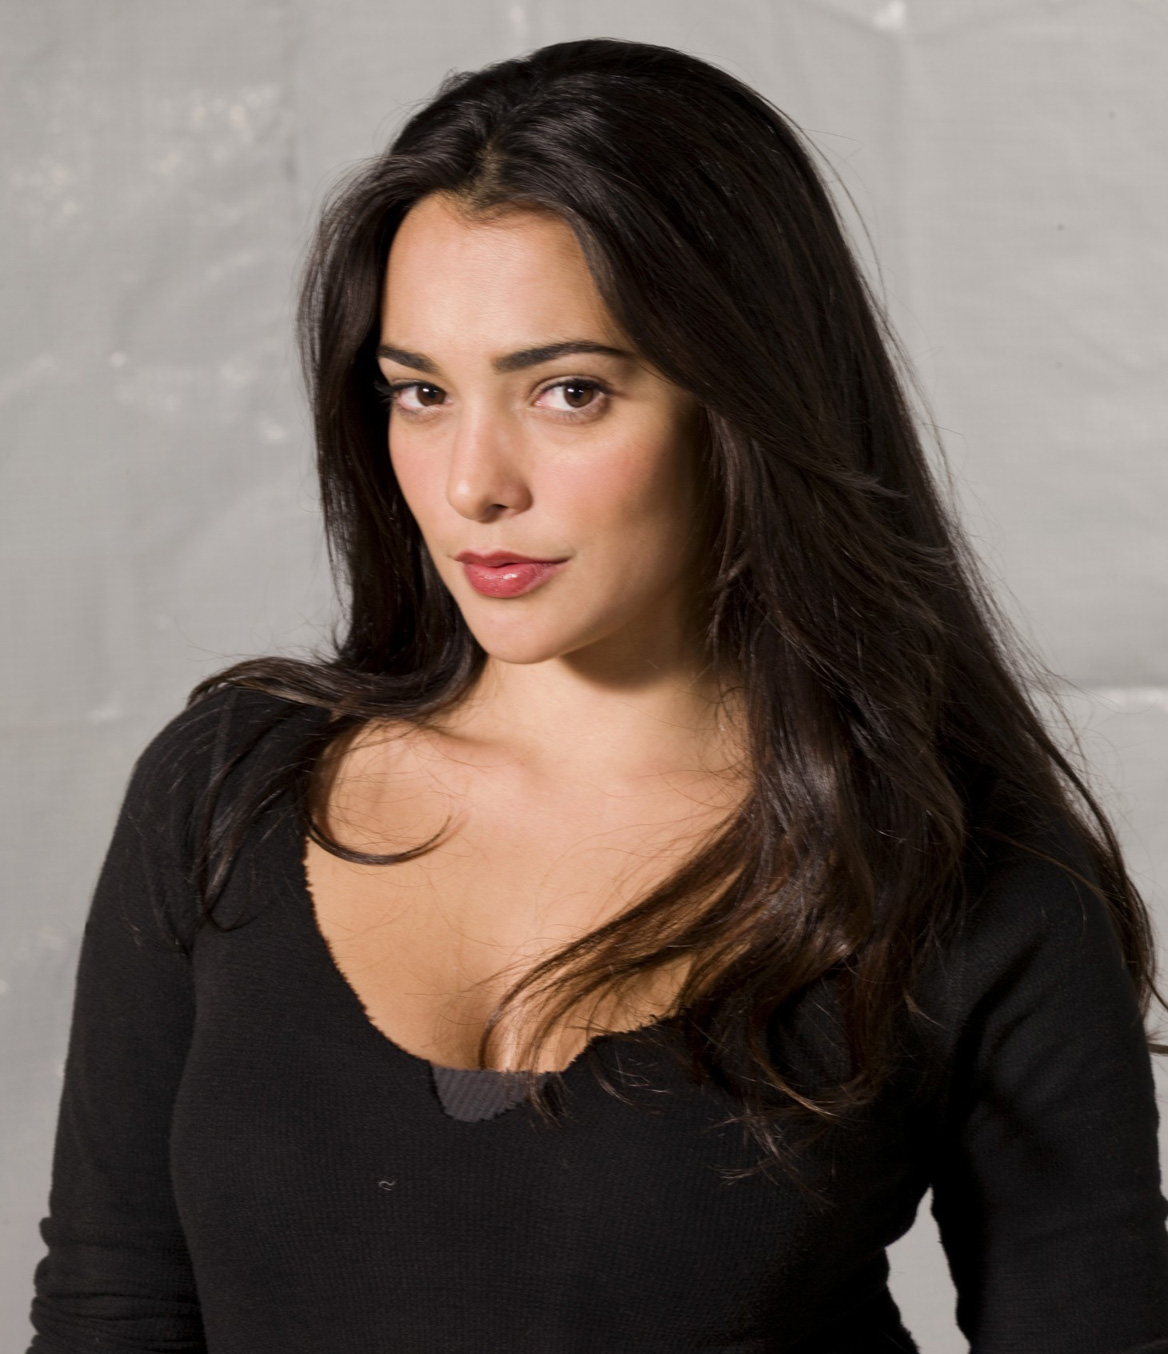 Natalie Martinez in Death Race Free Wallpapers